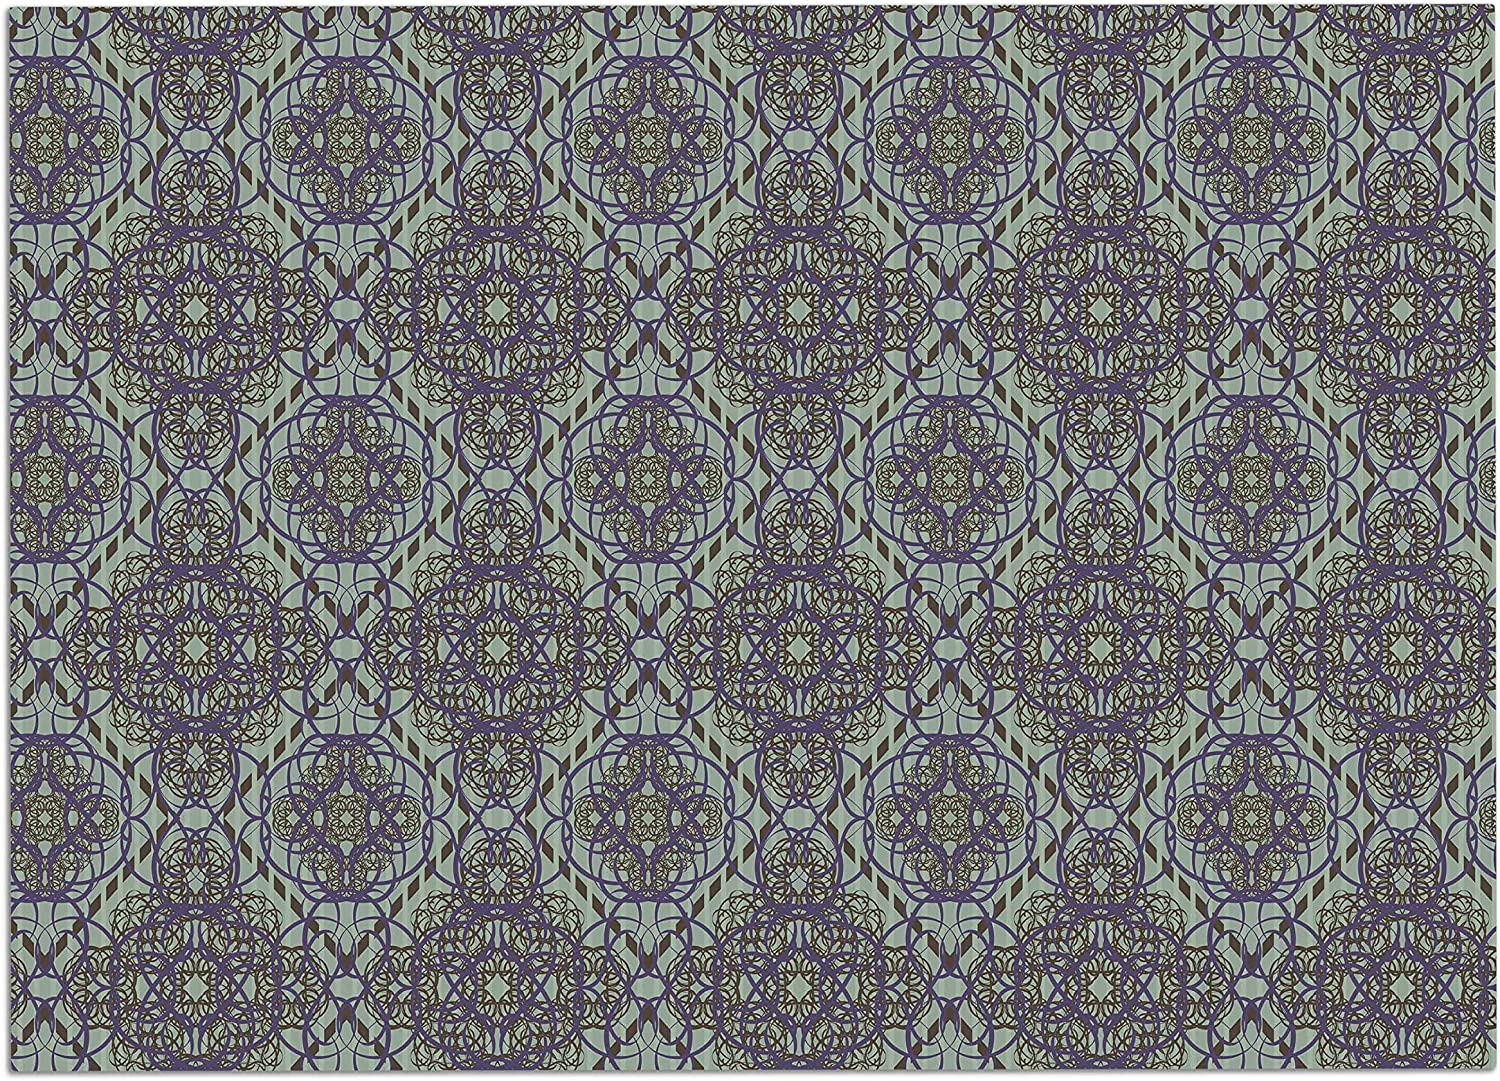 KESS InHouse AA1027ADM02 Mydeas Green and Purple Scroll Damask Green Purple Vector Dog Place Mat, 24 x15